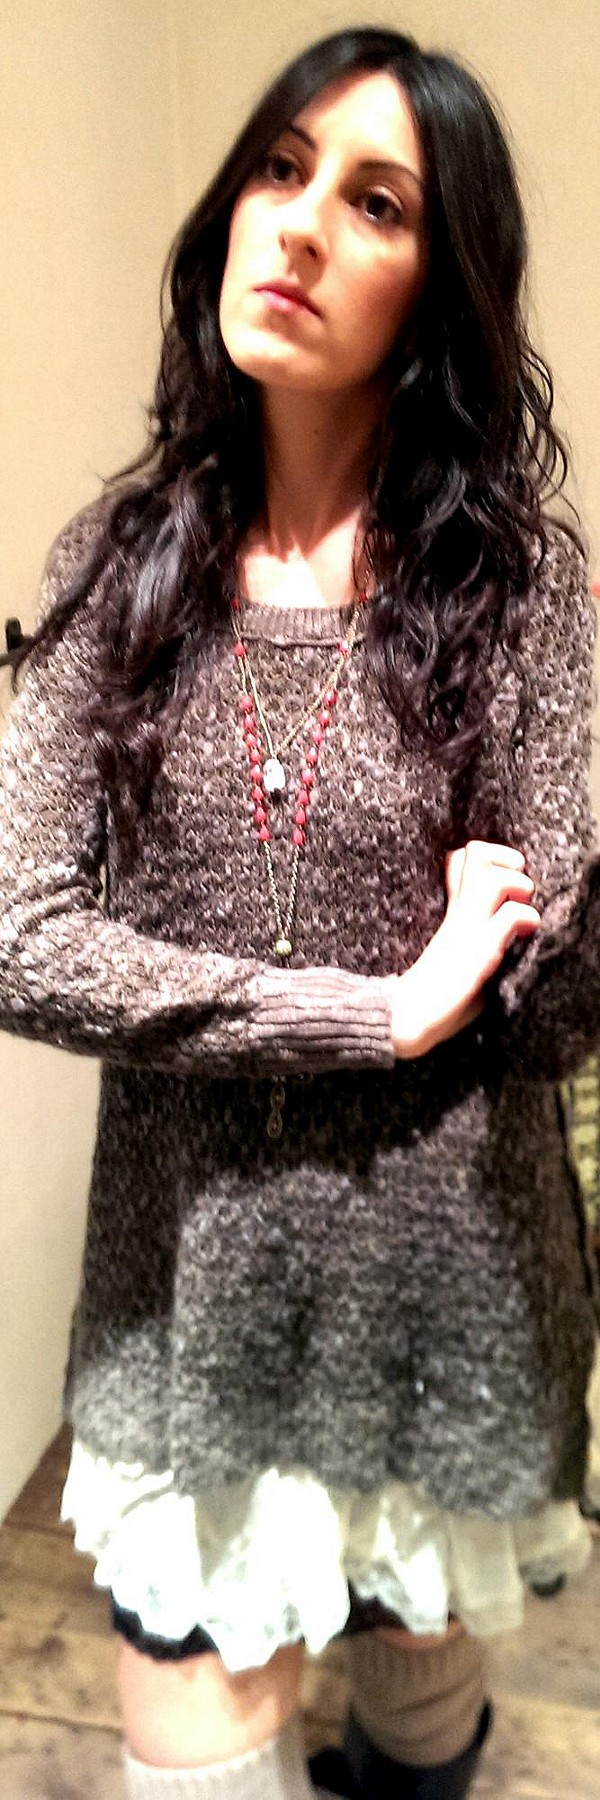 Honeycomb Mix Pullover style pic